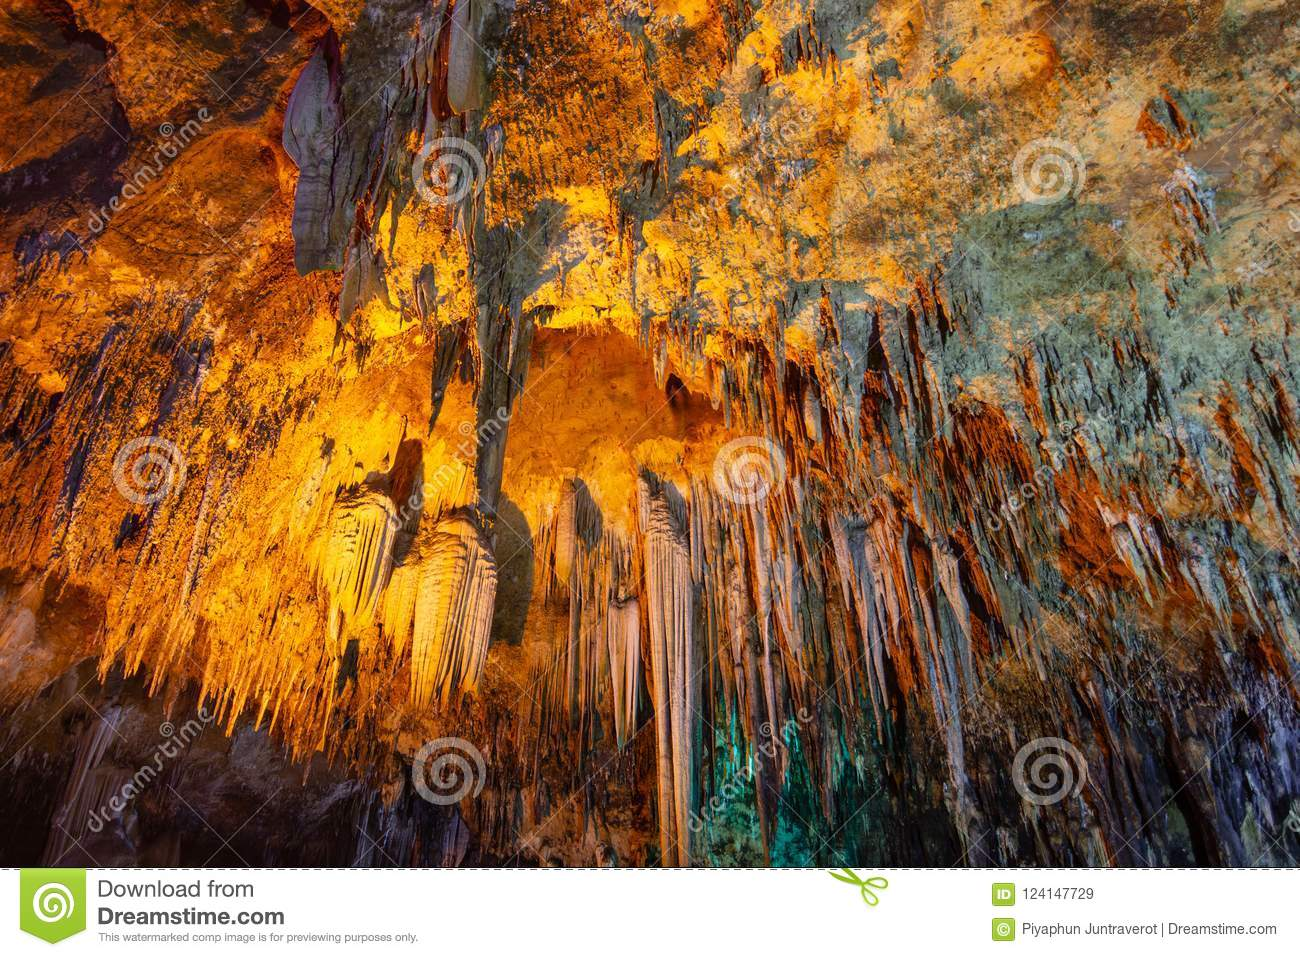 Khao bin cave of Thailand, inside cave view of multiple small slender stalactites on the ceiling of a dark cave